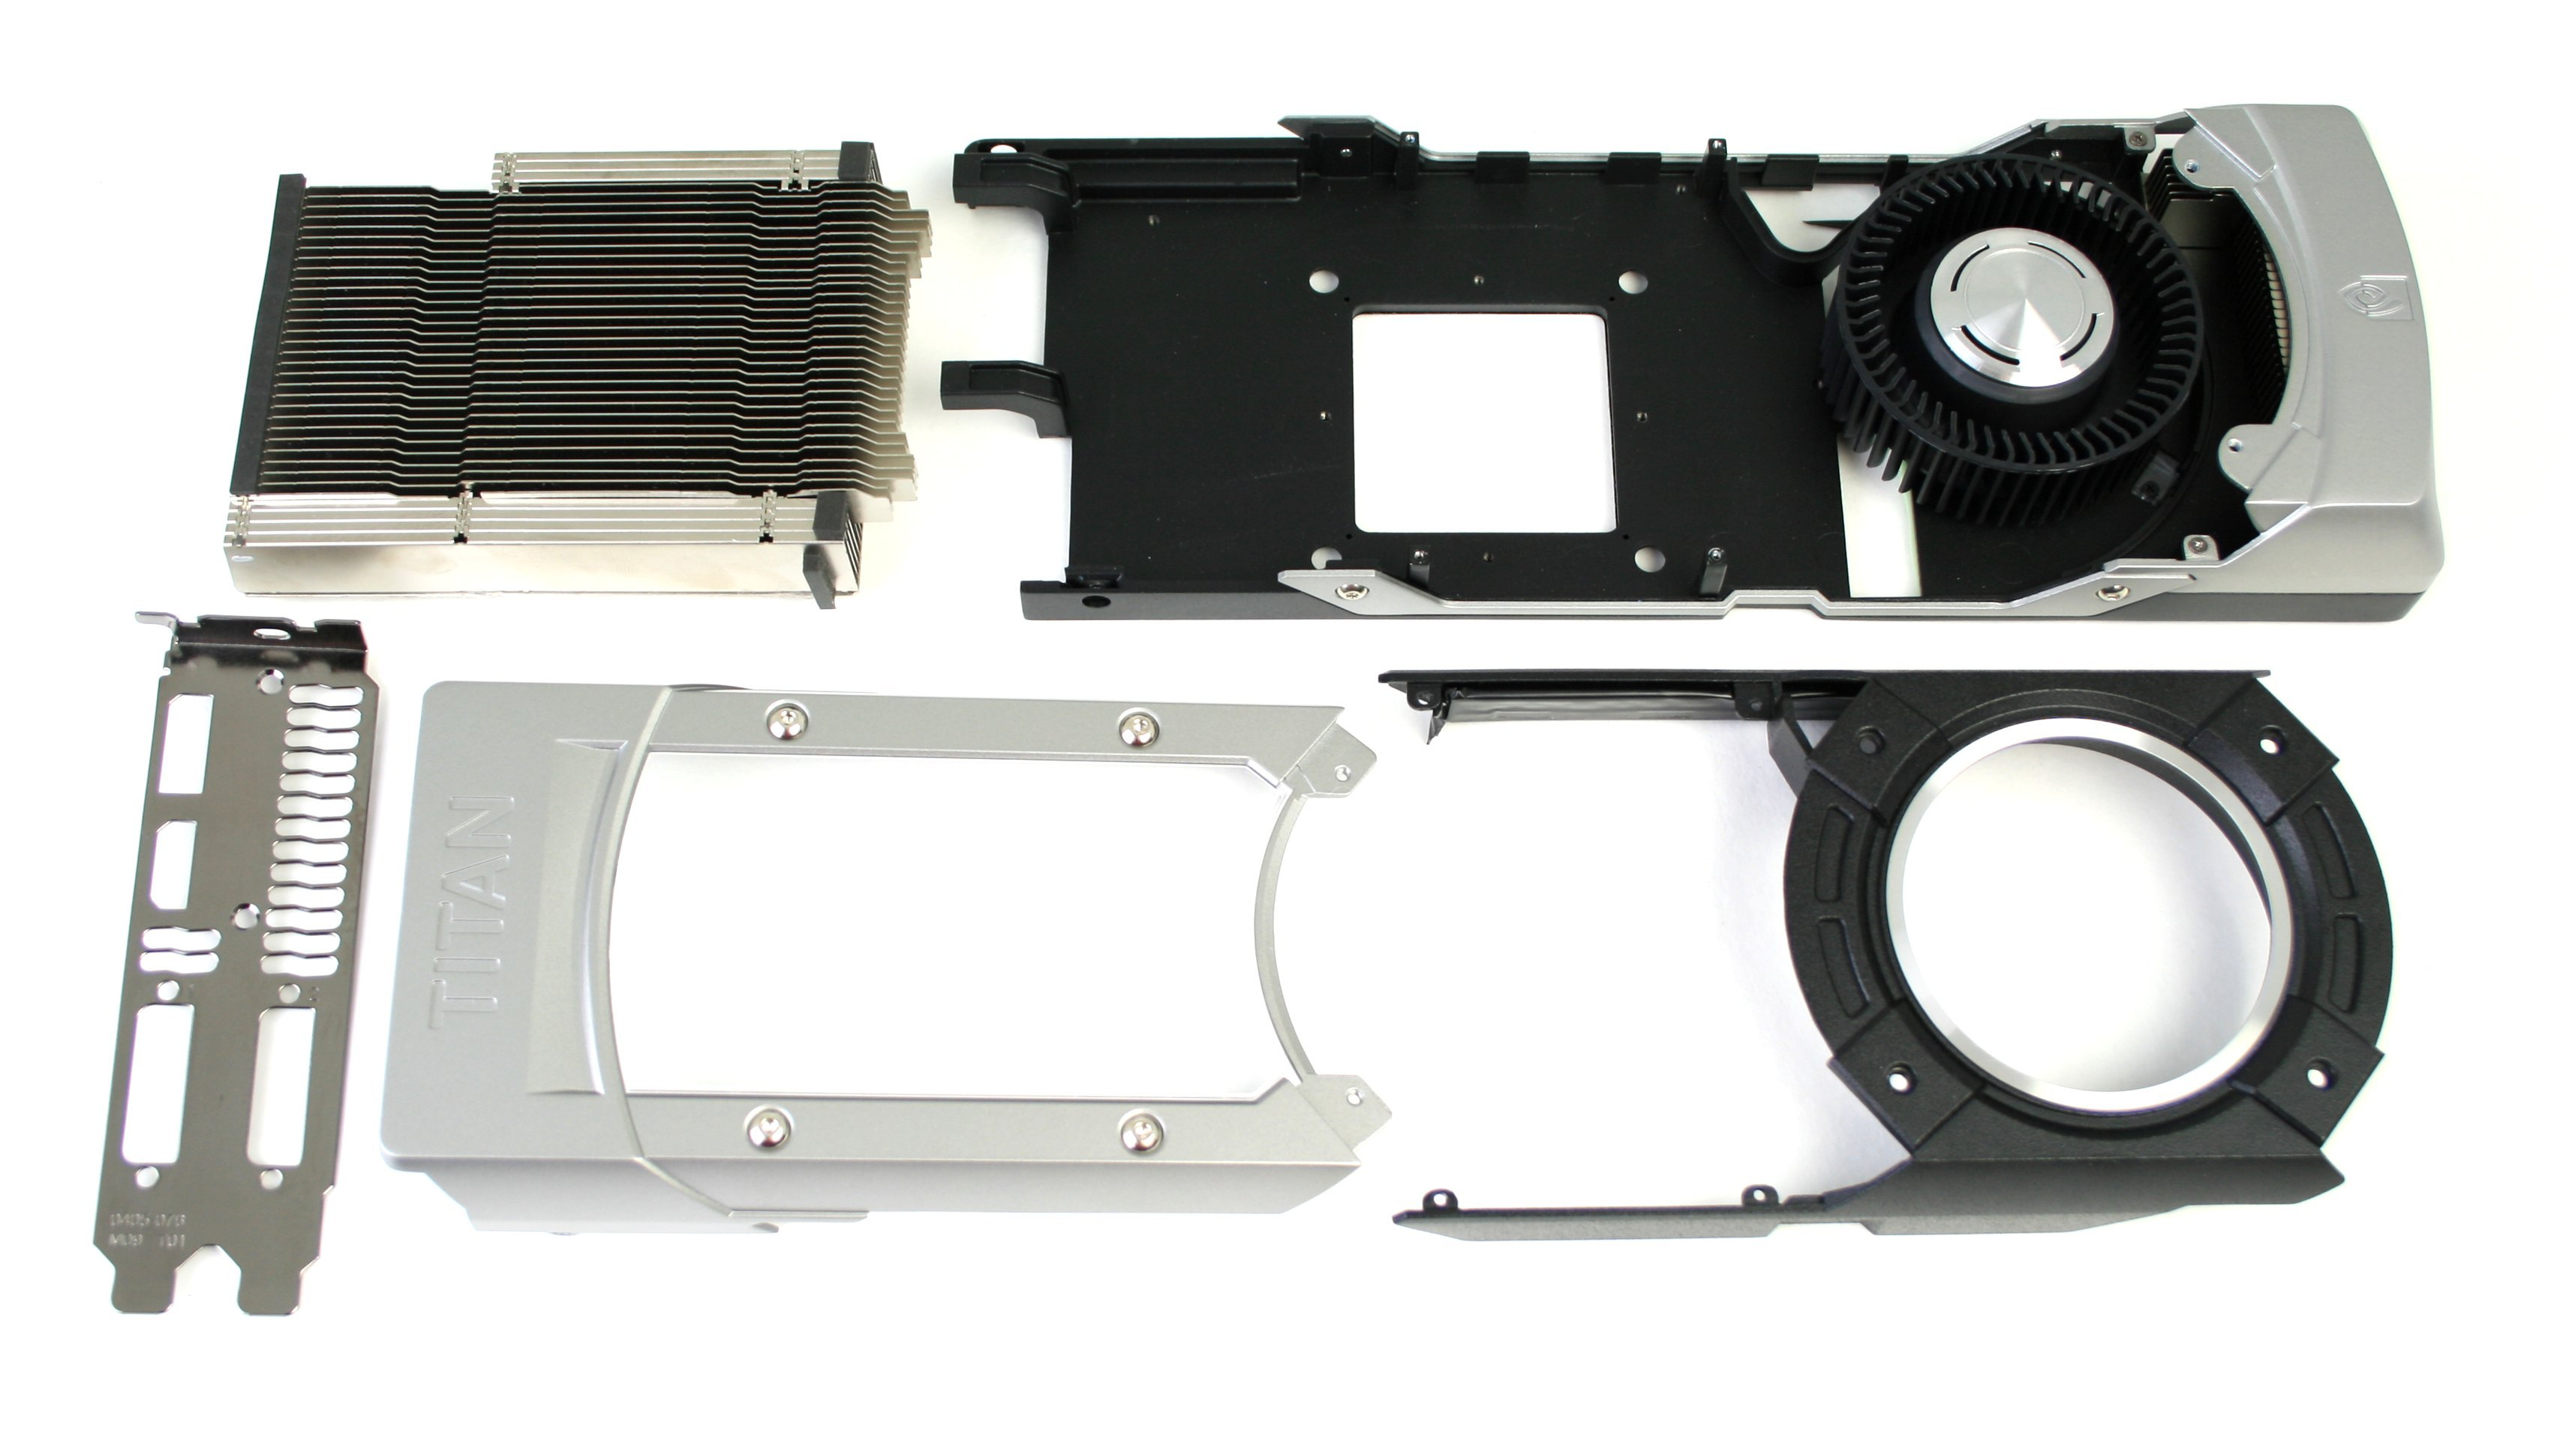 NVIDIA Geforce GTX Titan 6GB heatsink